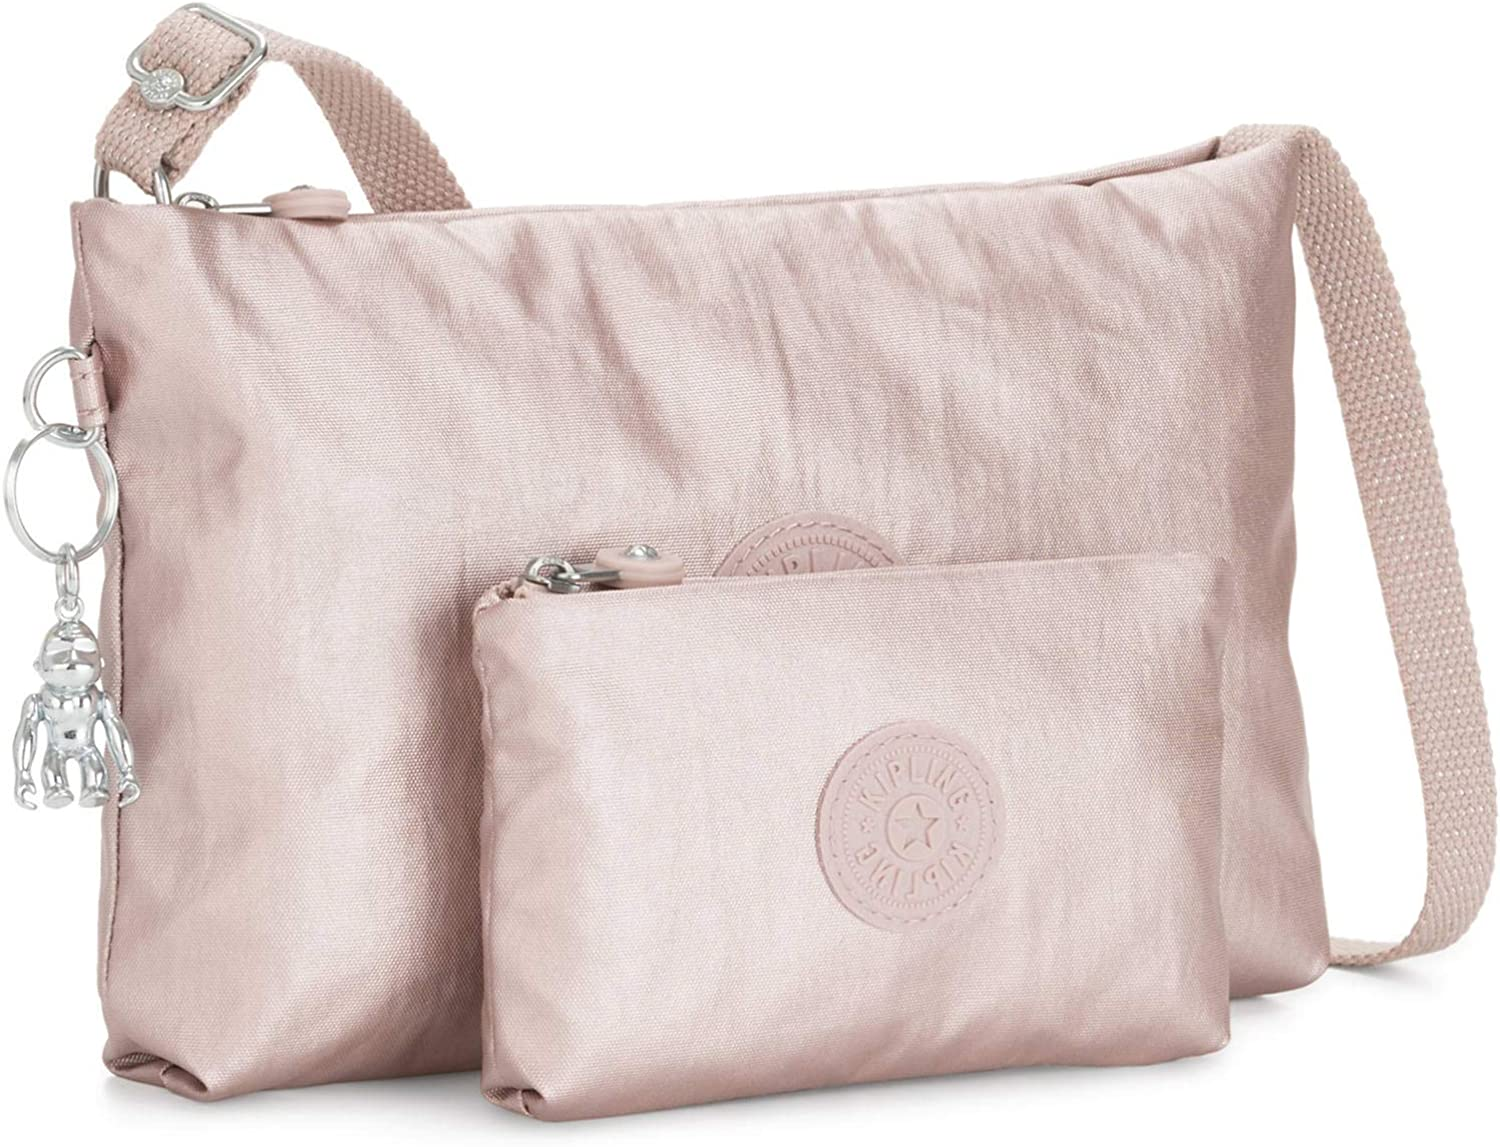 Kipling Atlez Duo Printed Crossbody Bag and Pouch Gift Set